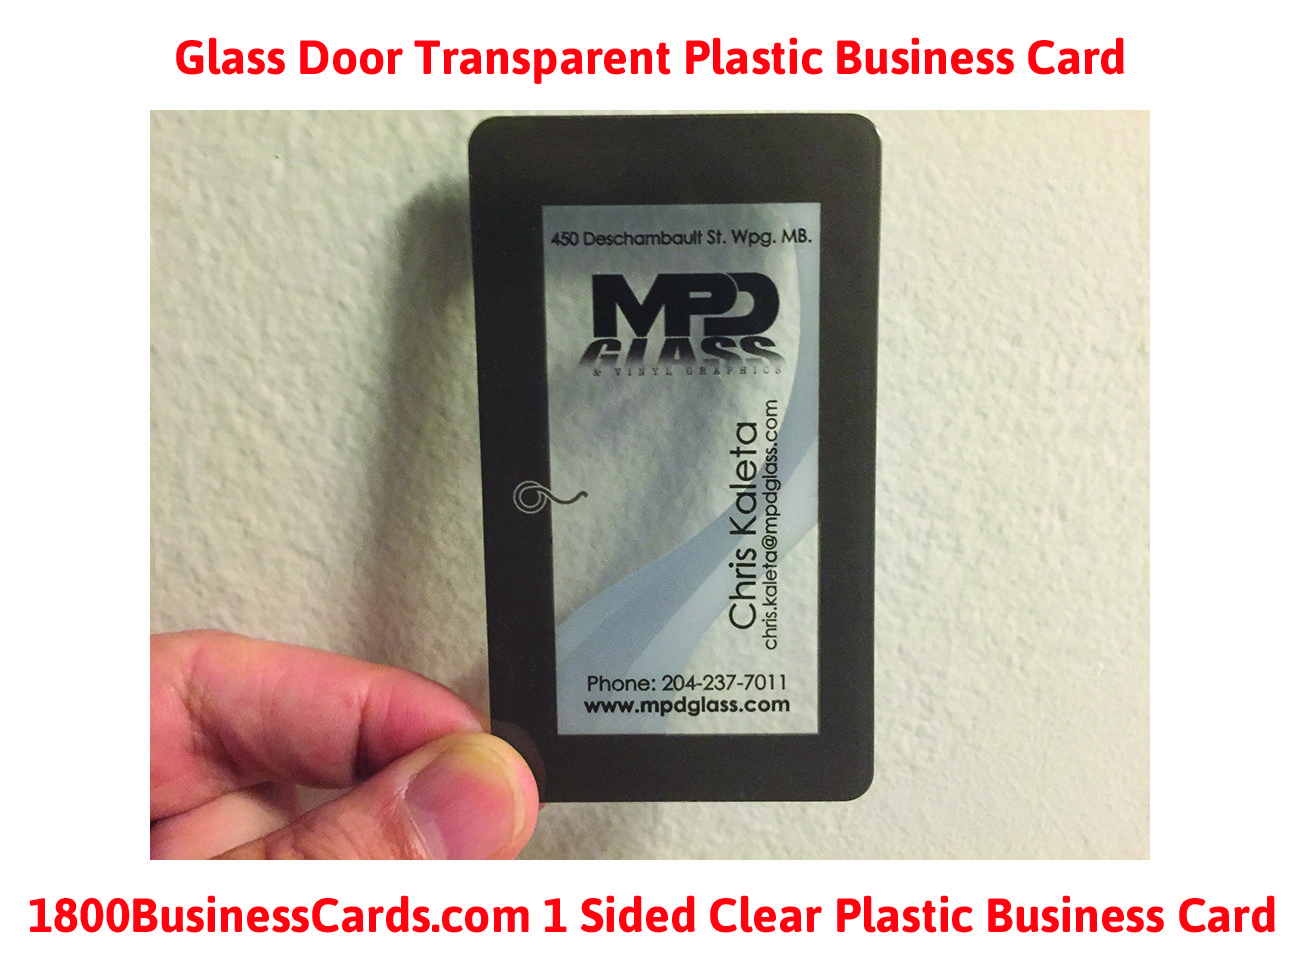 A glass door plastic business card printed at 1800businesscards ...